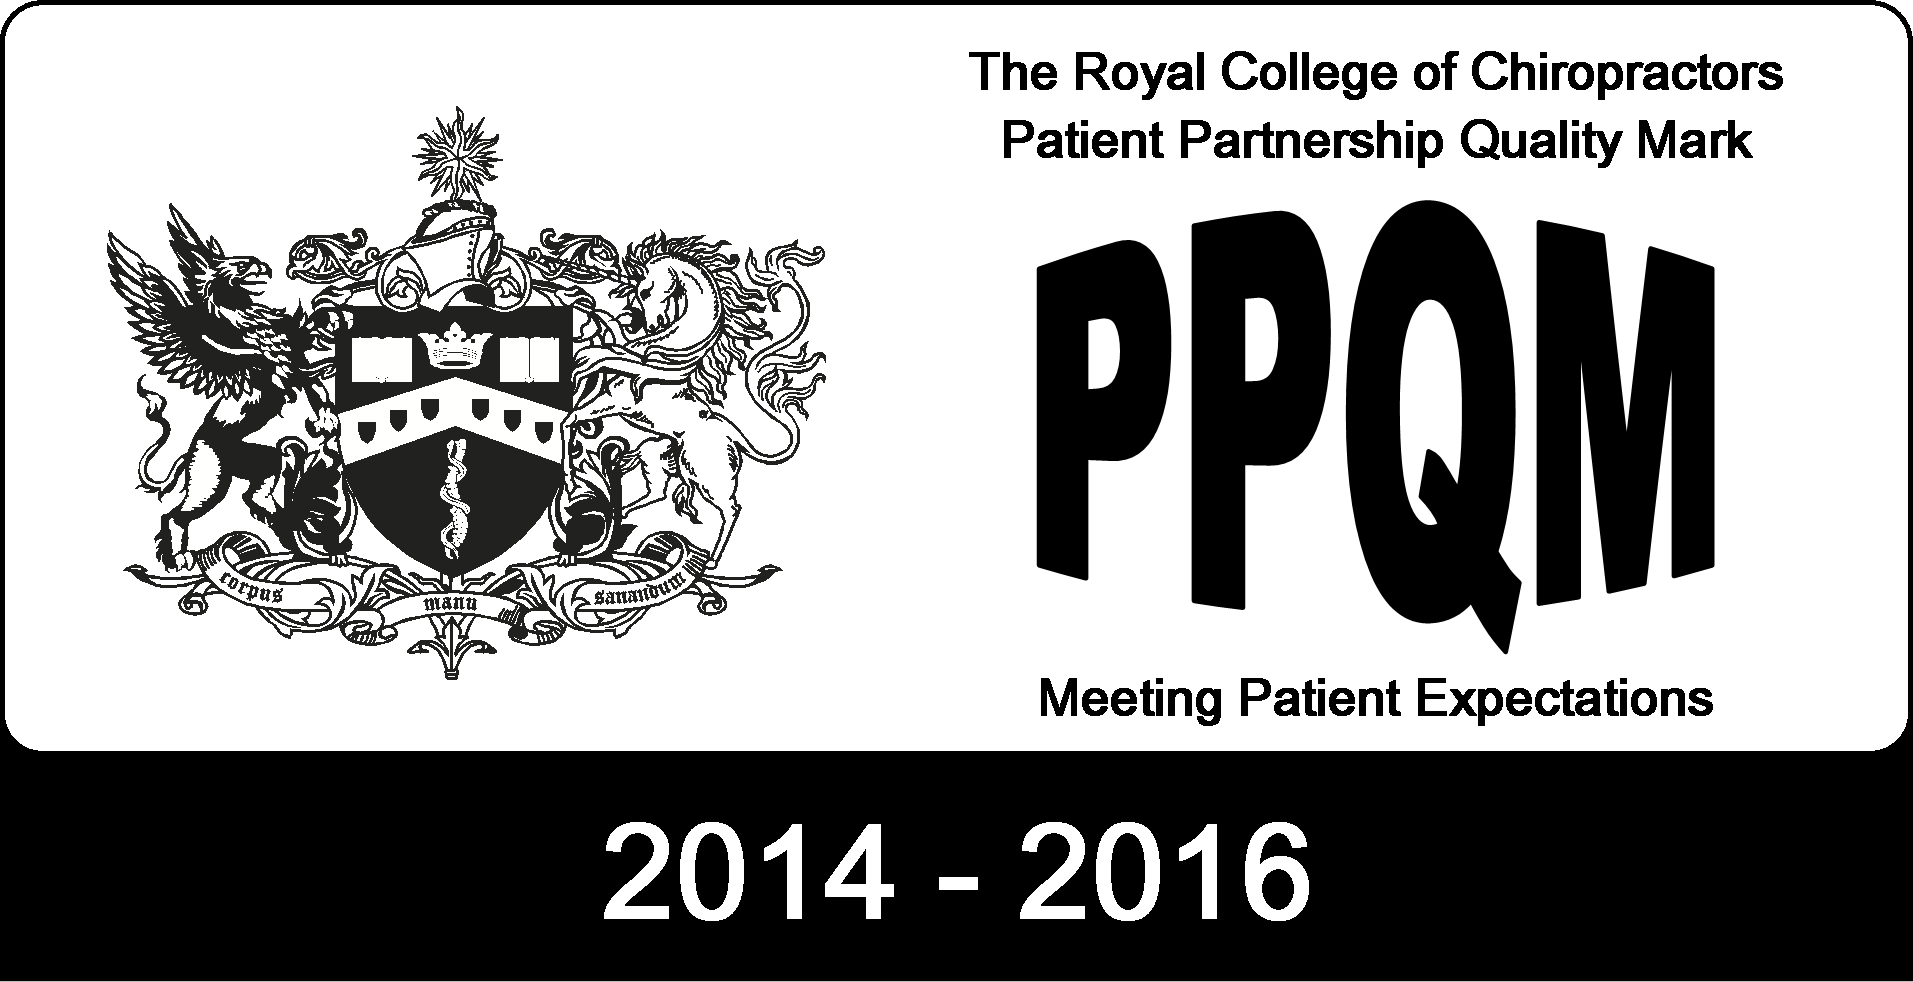 The college of Chiropractors Patient Partnership Quality Mark